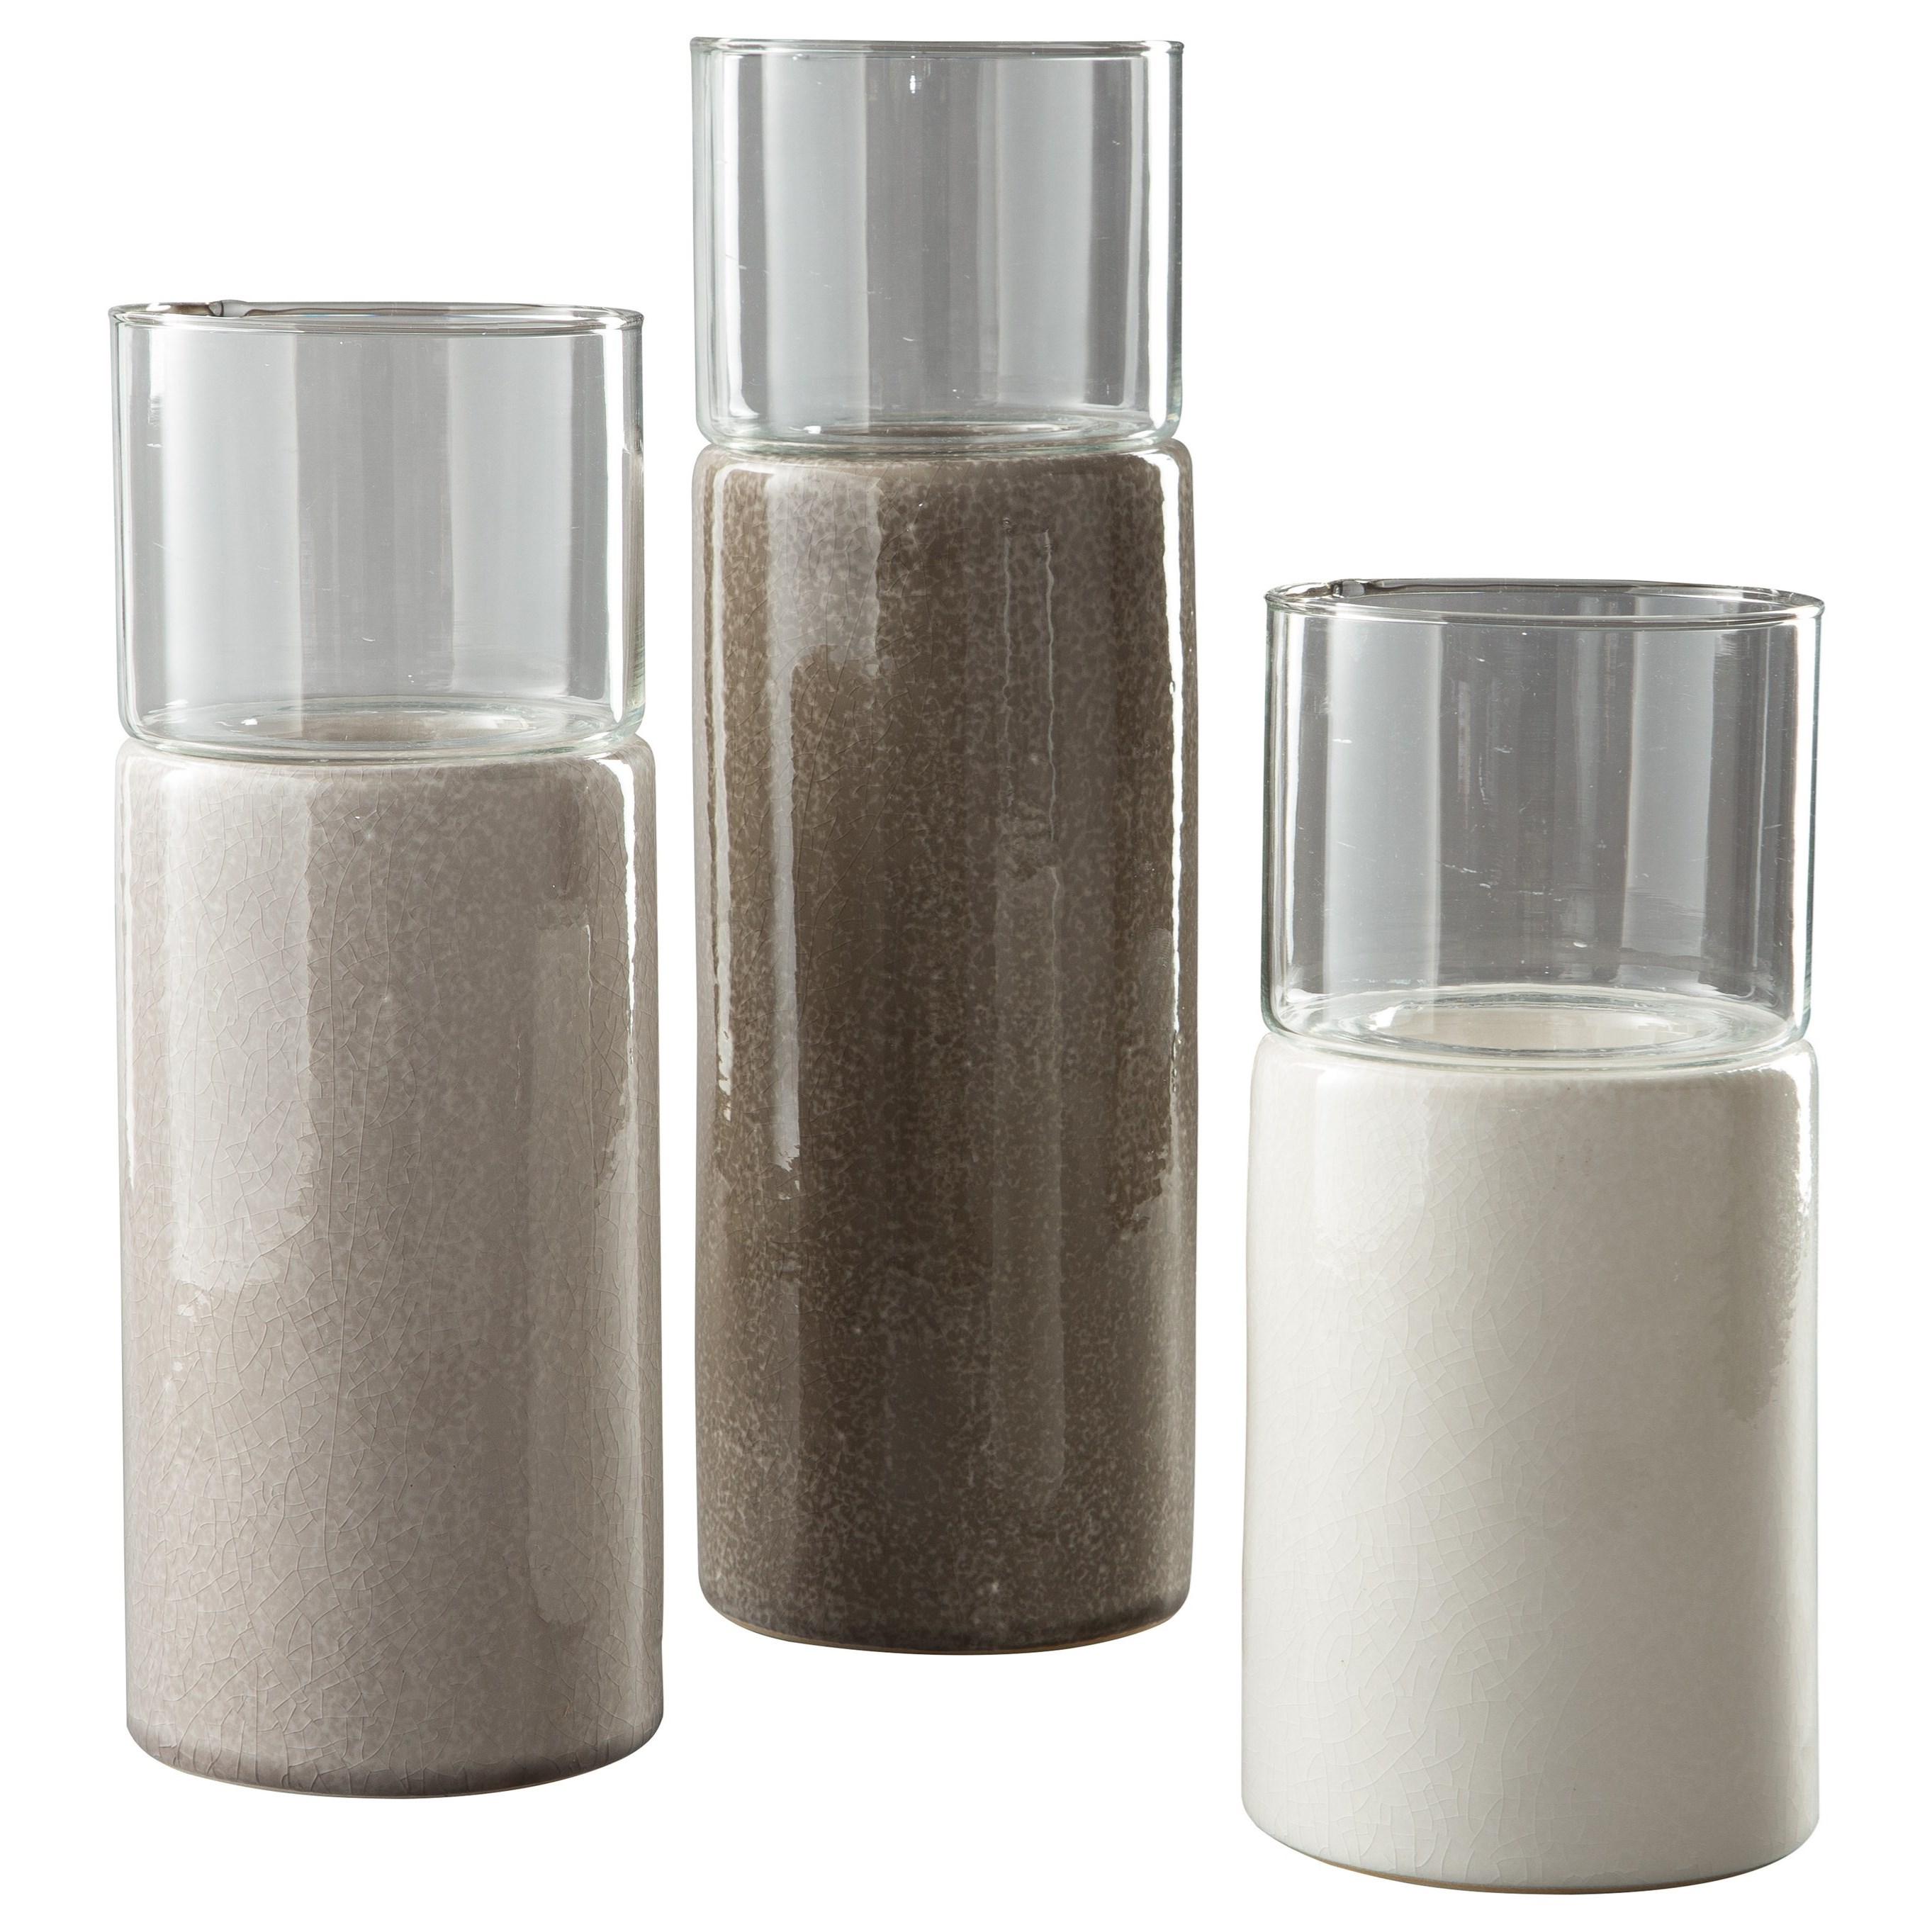 Deus Gray/White/Brown Candle Holder Set